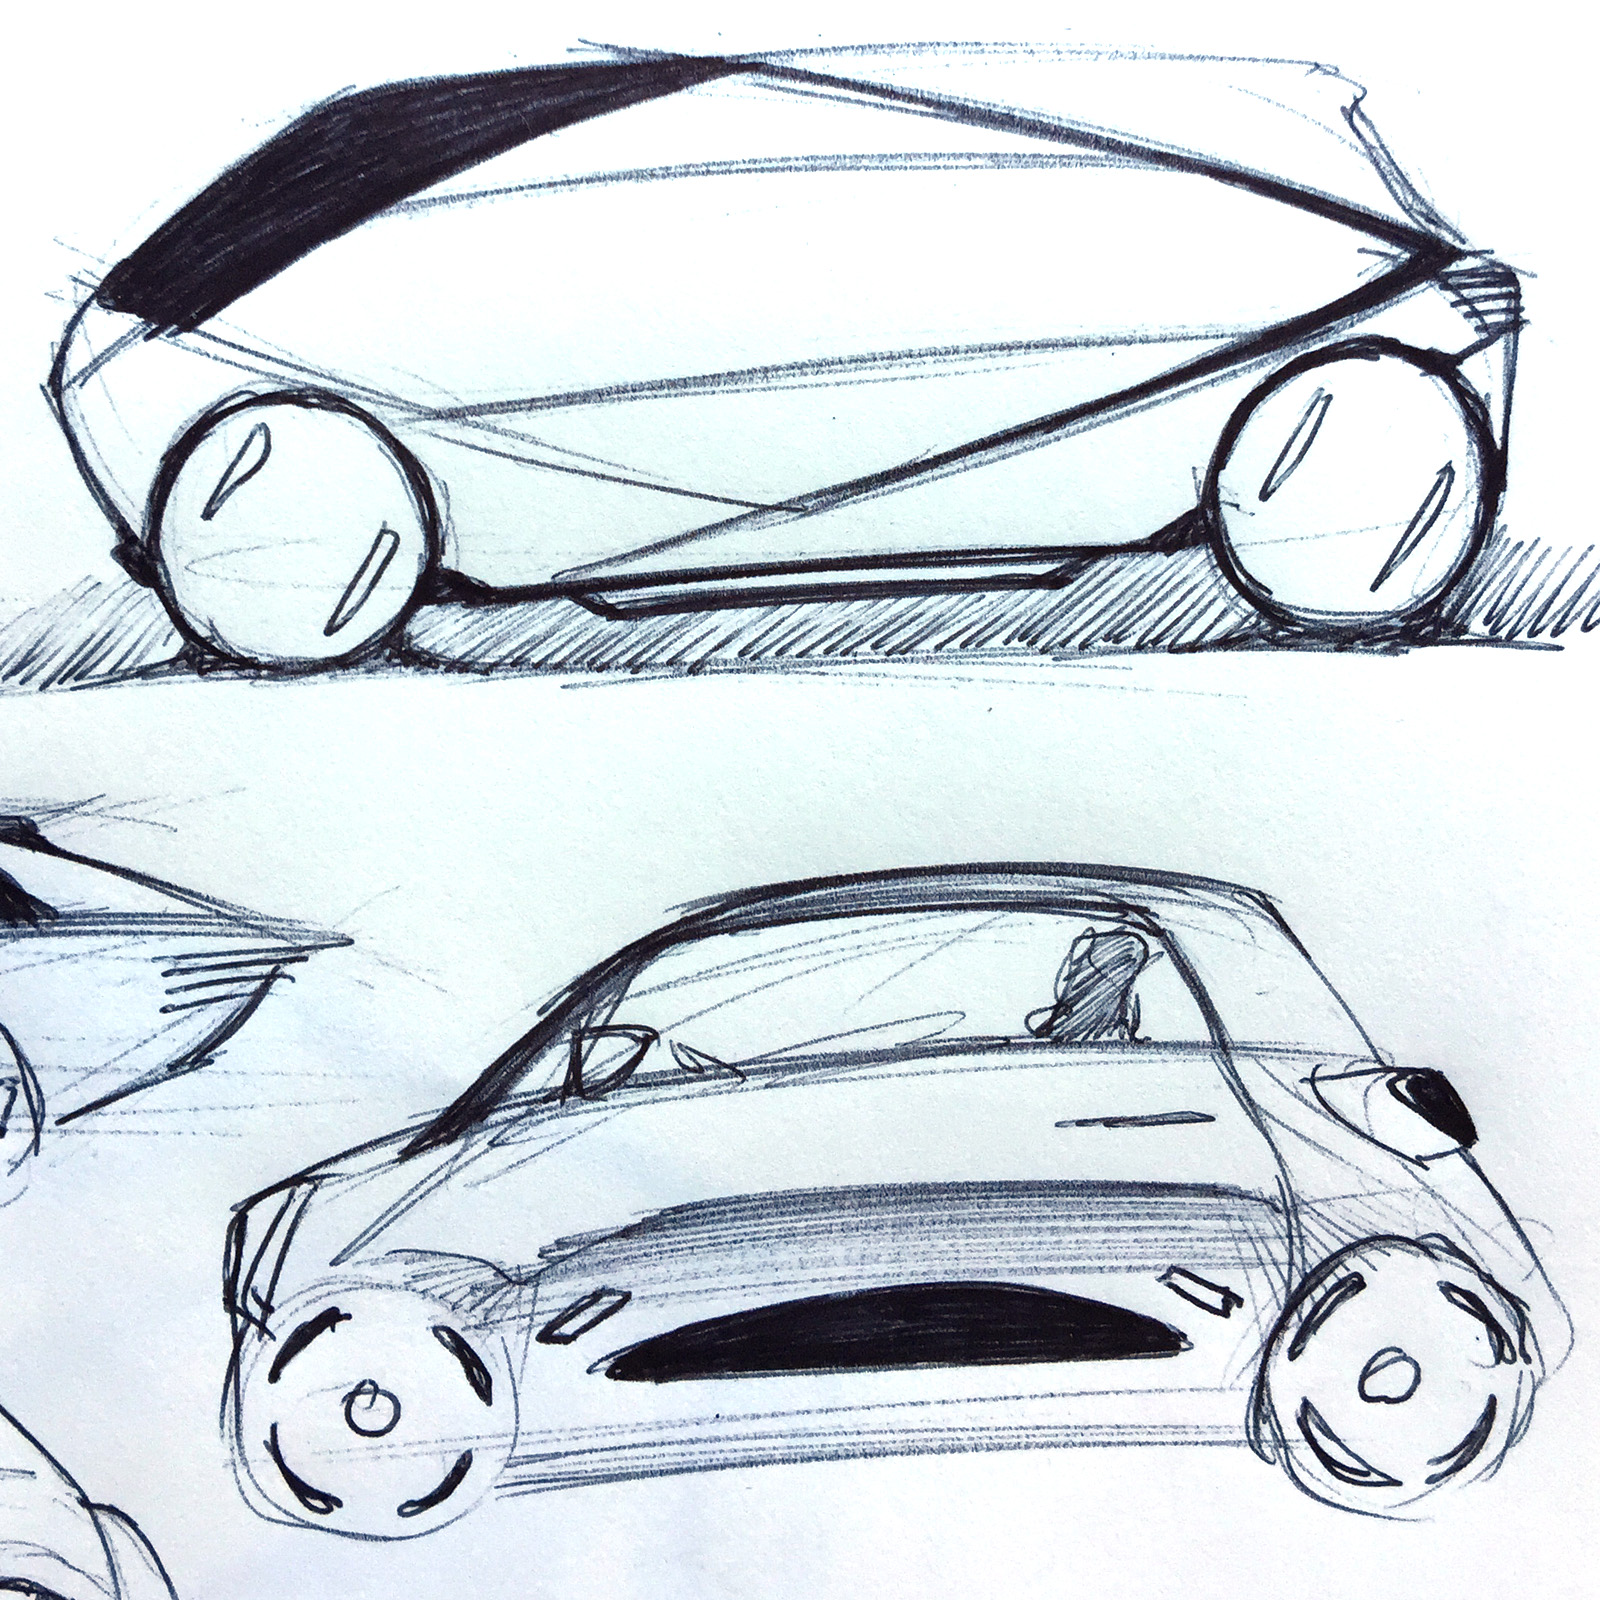 bothodesign-felix-haas-vehicle-automotive-concept-IG_sketches_008